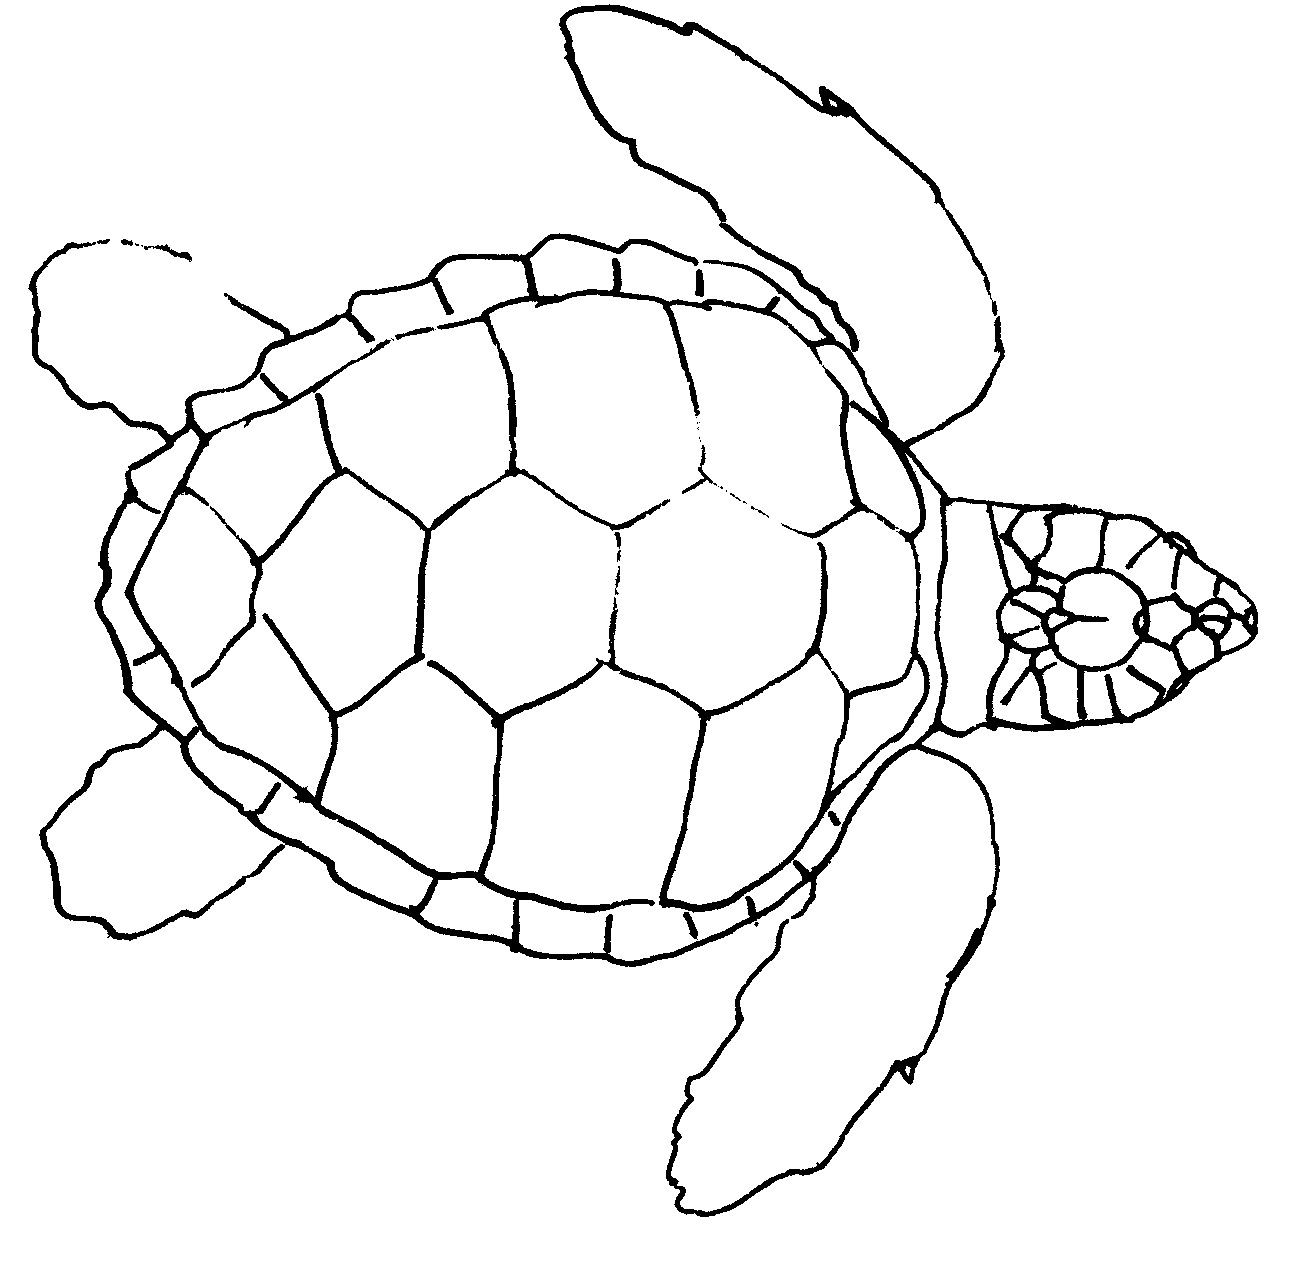 turtle outline Turtle drawing, Turtle outline, Outline